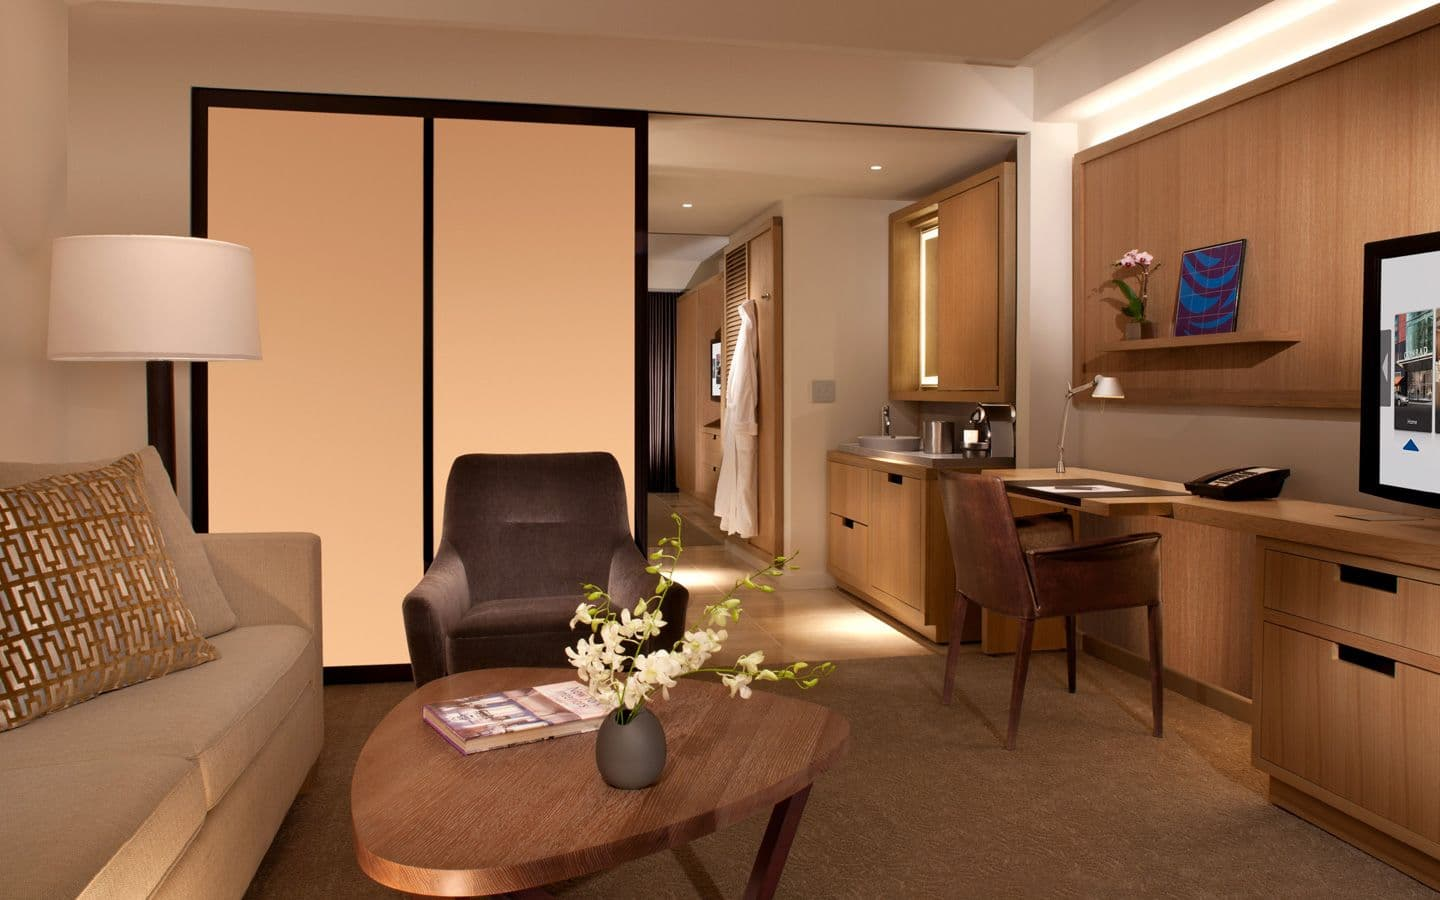 2 Bedroom Apartment Hotels In New York City